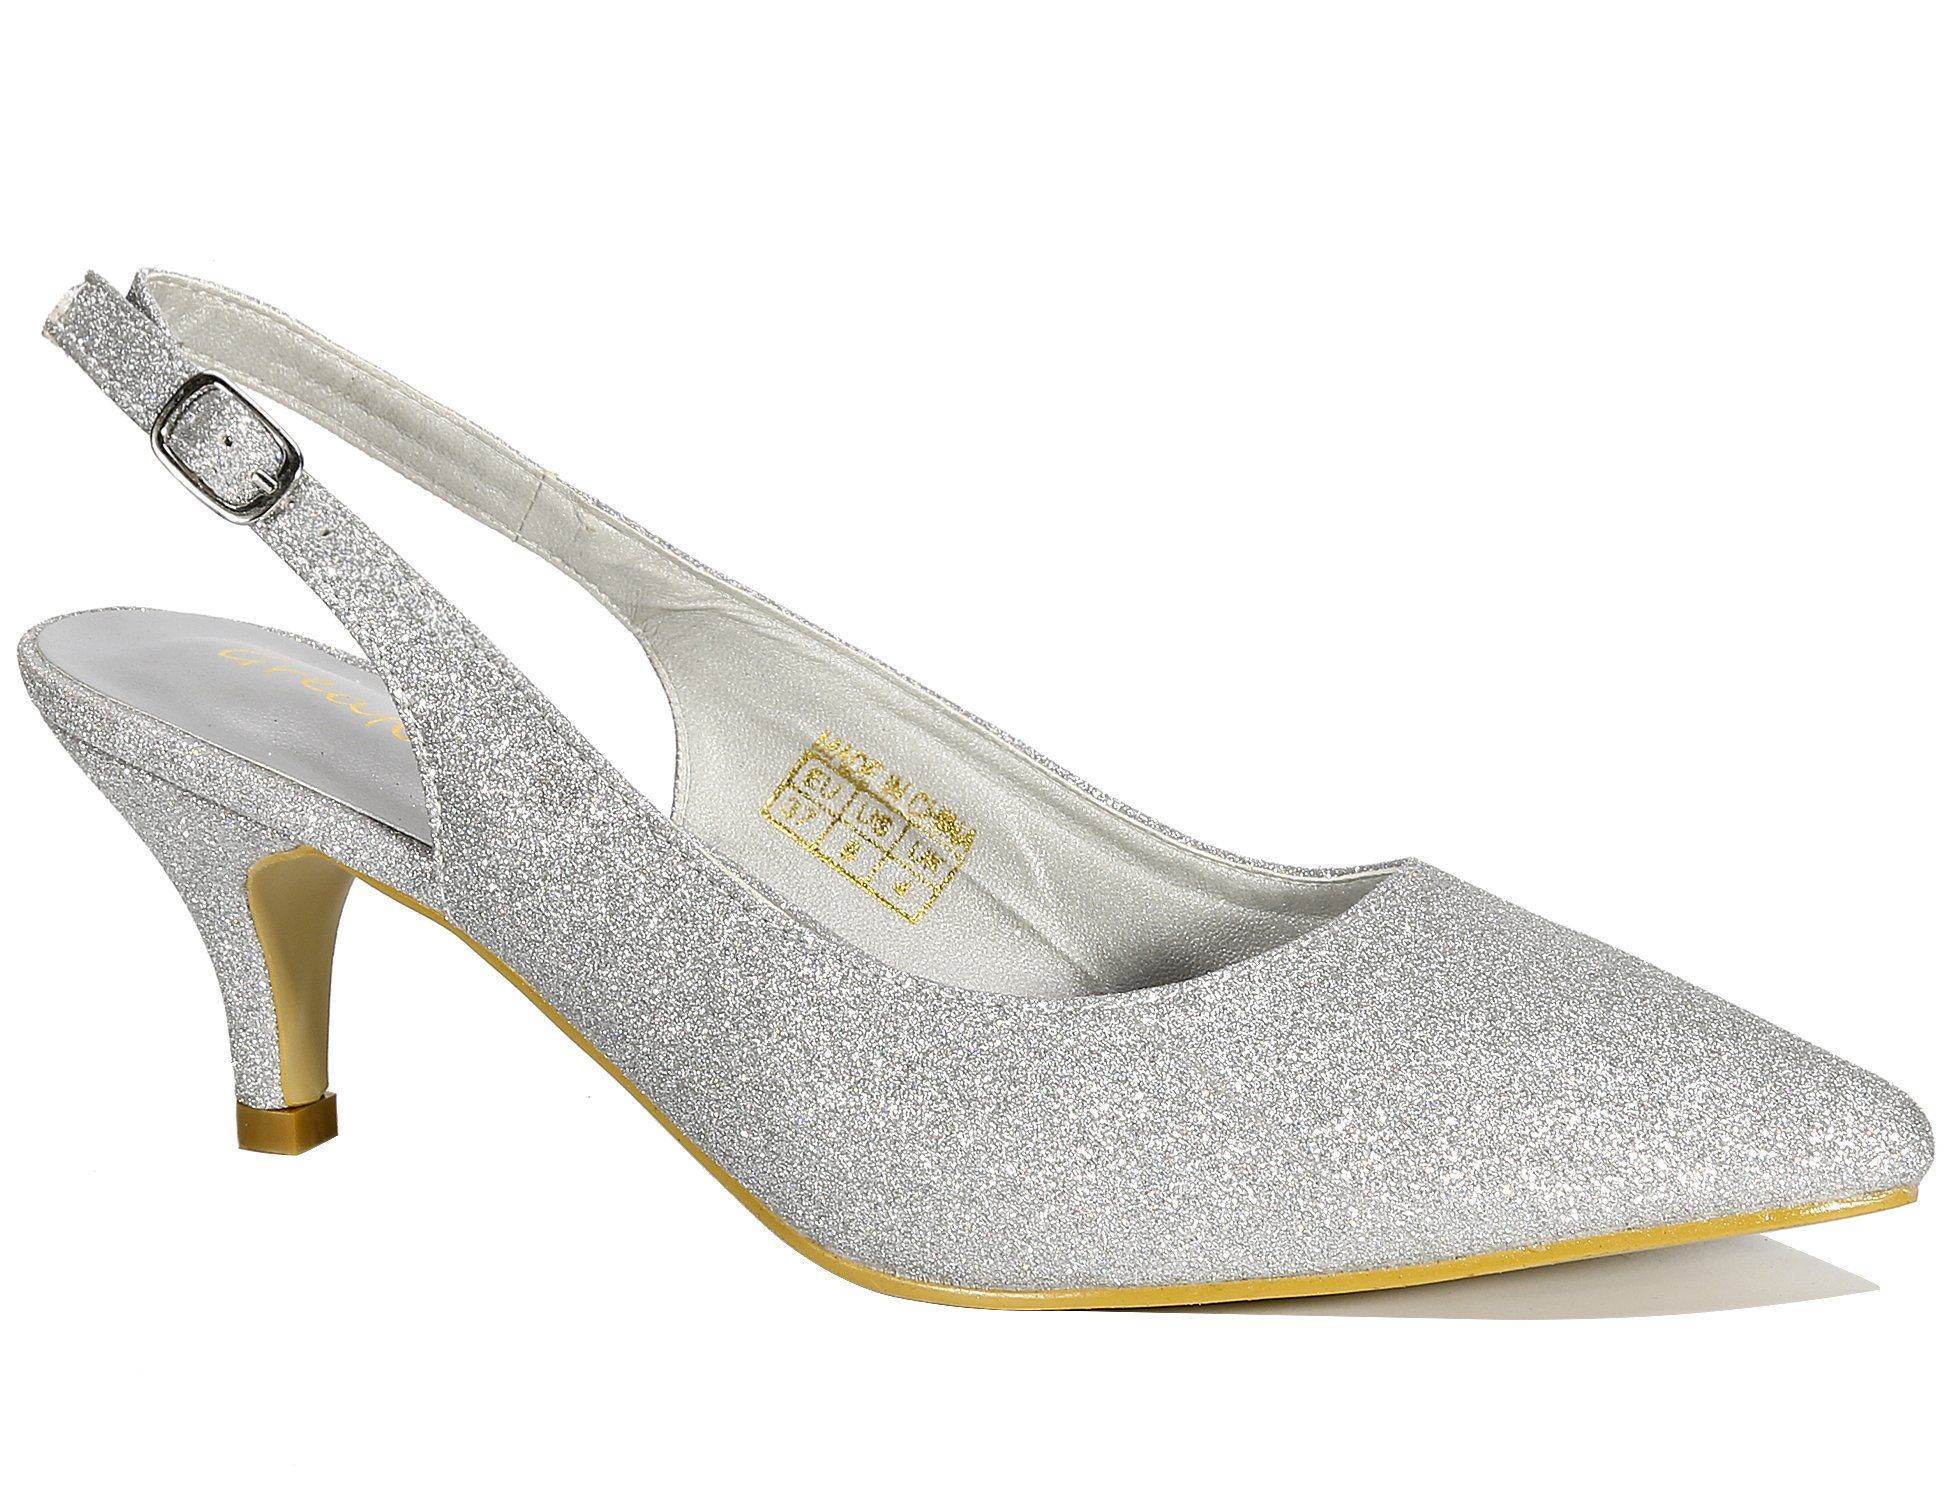 b81abce599054 Greatonu Women Shoes Silver Glitter Kitten Heels Slingback Dress Pumps Size  6.5